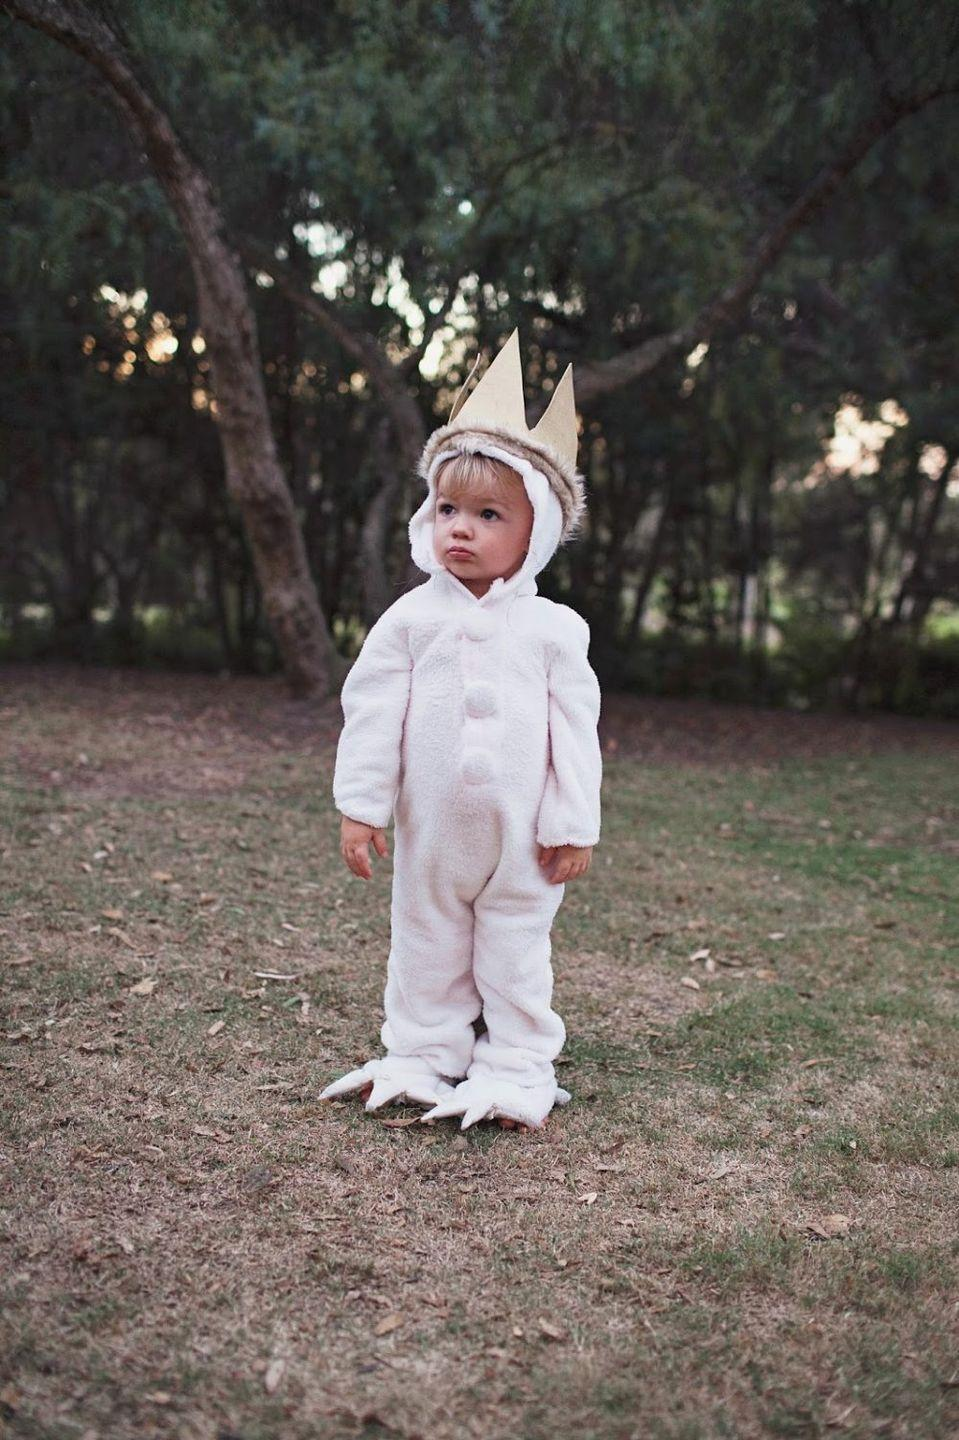 """<p>If there's anything better than a book character costume, it's one that's warm and cozy. Littles ones will look even cuter in this onesie.</p><p><strong>Get the tutorial at <a href=""""https://tellloveandparty.com/2014/09/tell-diy-where-the-wild-things-are-family-costume.html"""" rel=""""nofollow noopener"""" target=""""_blank"""" data-ylk=""""slk:Tell Love and Party"""" class=""""link rapid-noclick-resp"""">Tell Love and Party</a>.</strong></p><p><a class=""""link rapid-noclick-resp"""" href=""""https://go.redirectingat.com?id=74968X1596630&url=https%3A%2F%2Fwww.walmart.com%2Fsearch%2F%3Fquery%3Dcandy%2Bbucket&sref=https%3A%2F%2Fwww.thepioneerwoman.com%2Fholidays-celebrations%2Fg37014285%2Fbook-character-costumes%2F"""" rel=""""nofollow noopener"""" target=""""_blank"""" data-ylk=""""slk:SHOP CANDY BUCKETS"""">SHOP CANDY BUCKETS</a></p>"""